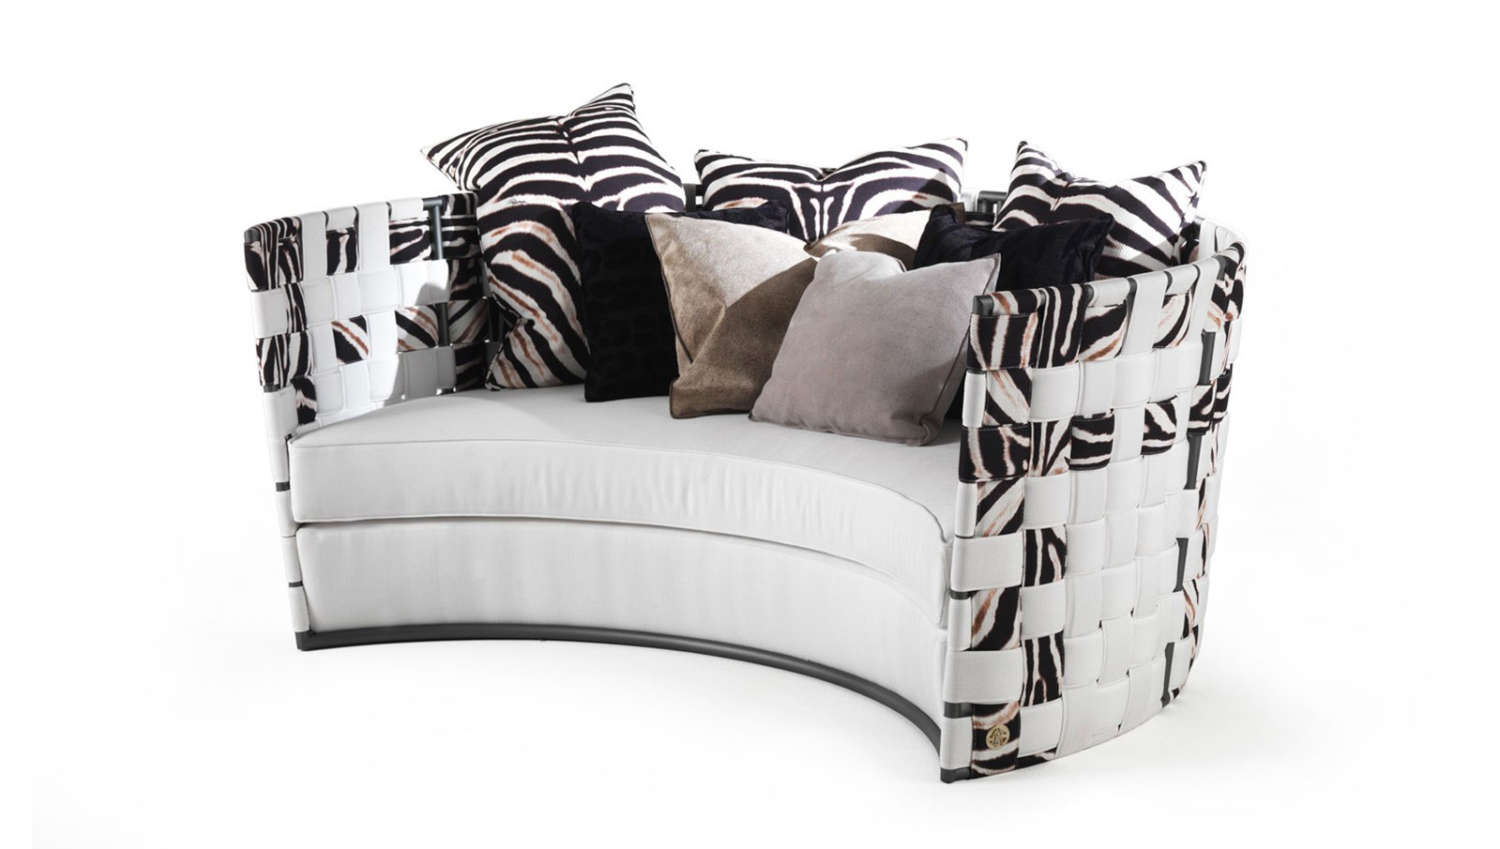 Roberto Cavalli's Outdoor Collection Embodies Indulgence roberto cavalli Roberto Cavalli's Outdoor Collection Embodies Indulgence RC FIELDER outdoor sofa with pouf slider2